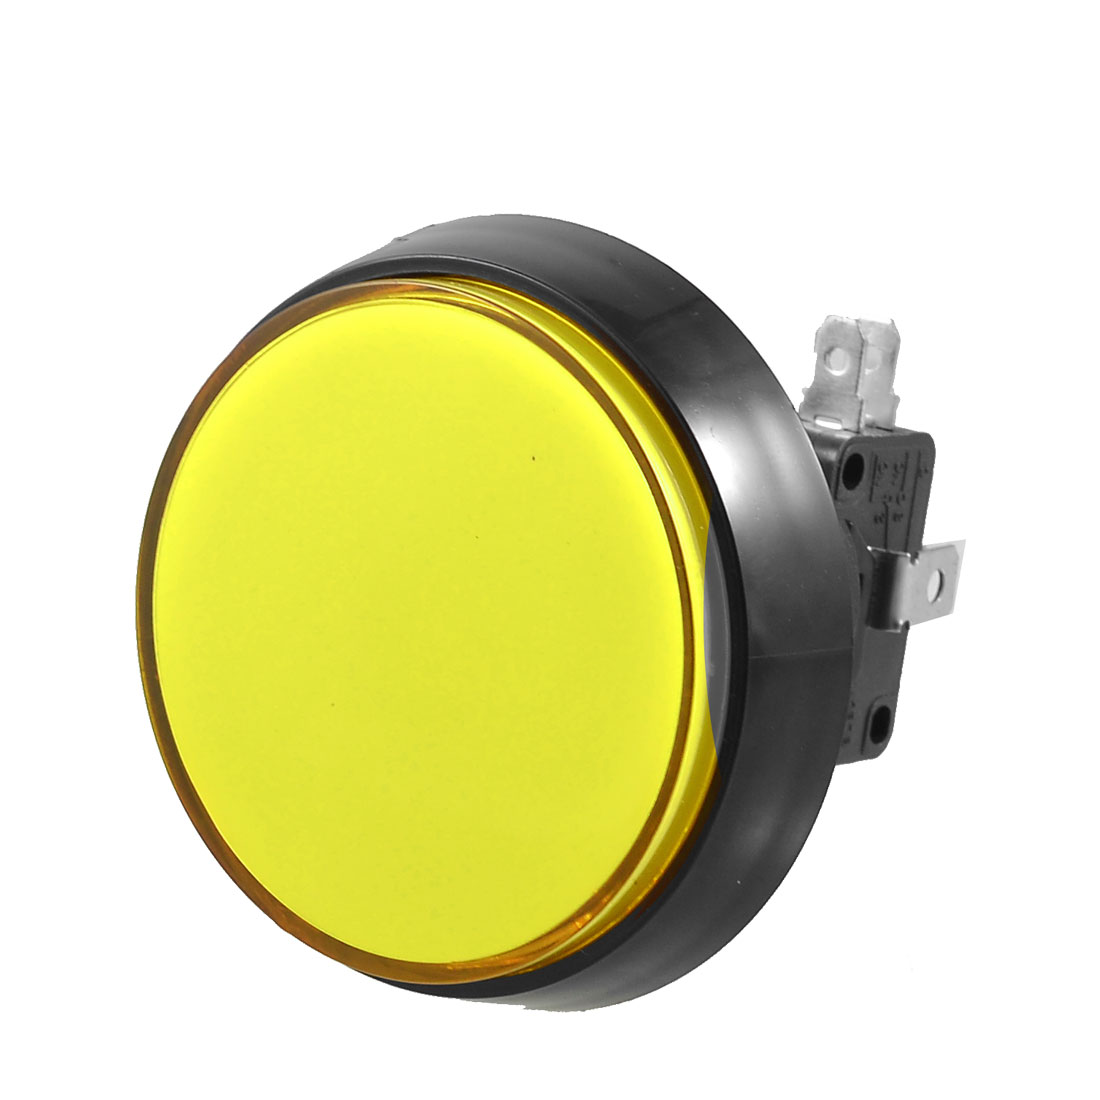 Arcade Game 52mm Yellow Illuminated Momentary Push Button SPDT Micro Switch